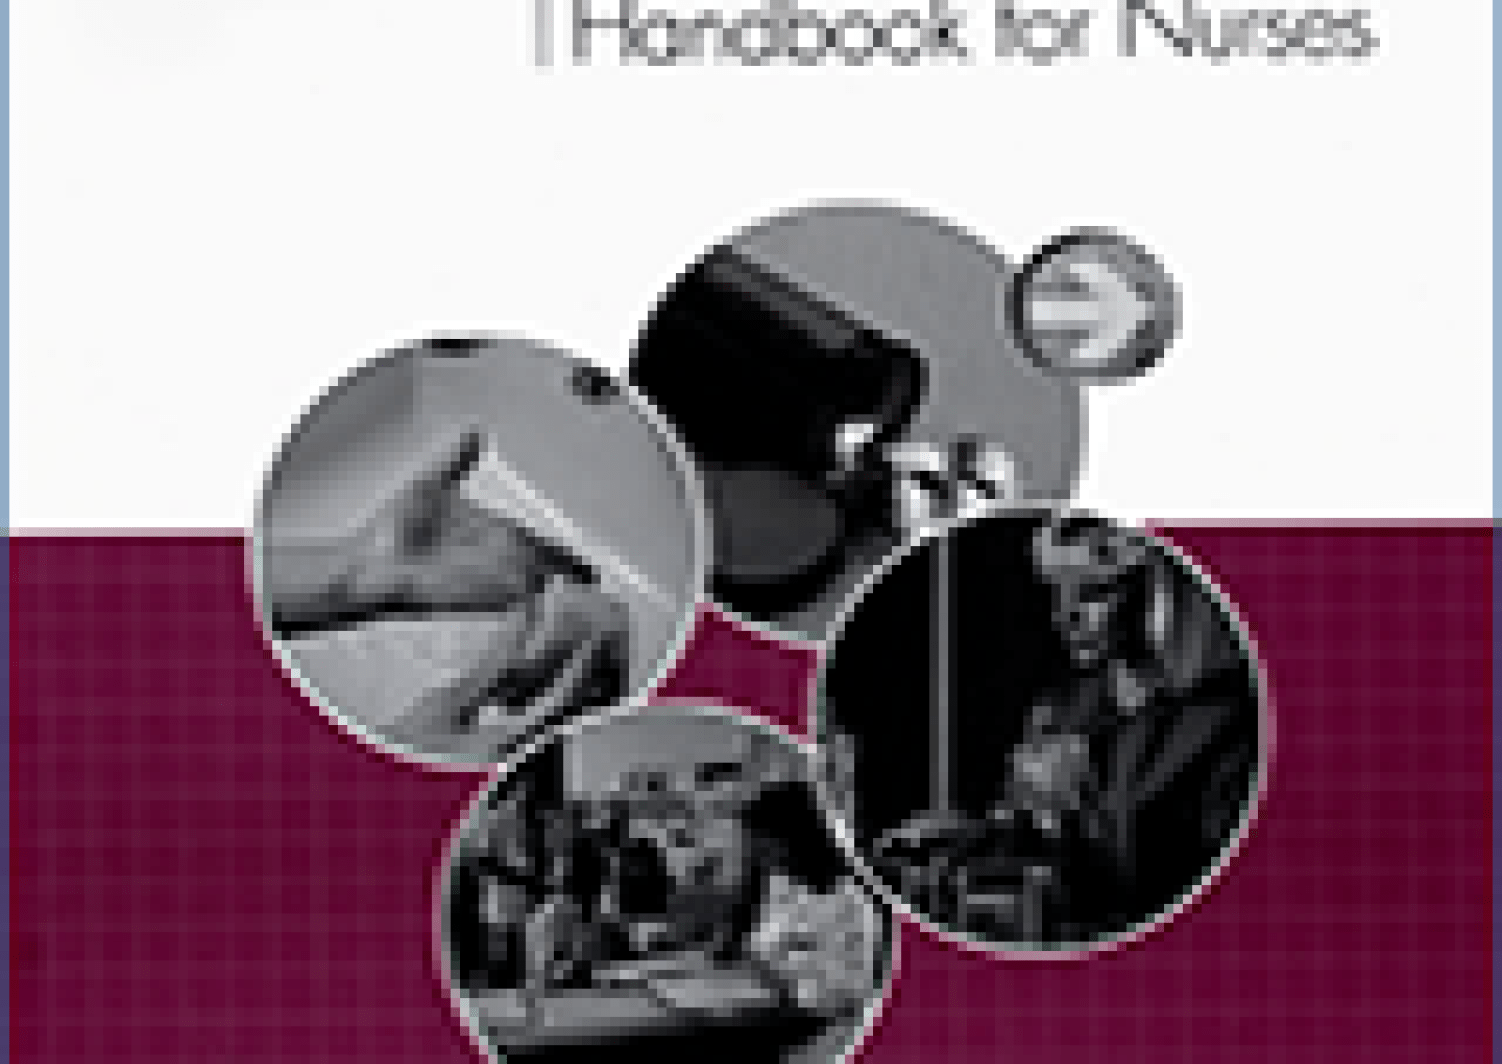 Nurse Staffing And Patient Care Quality And Safety Patient Safety And Quality Ncbi Bookshelf